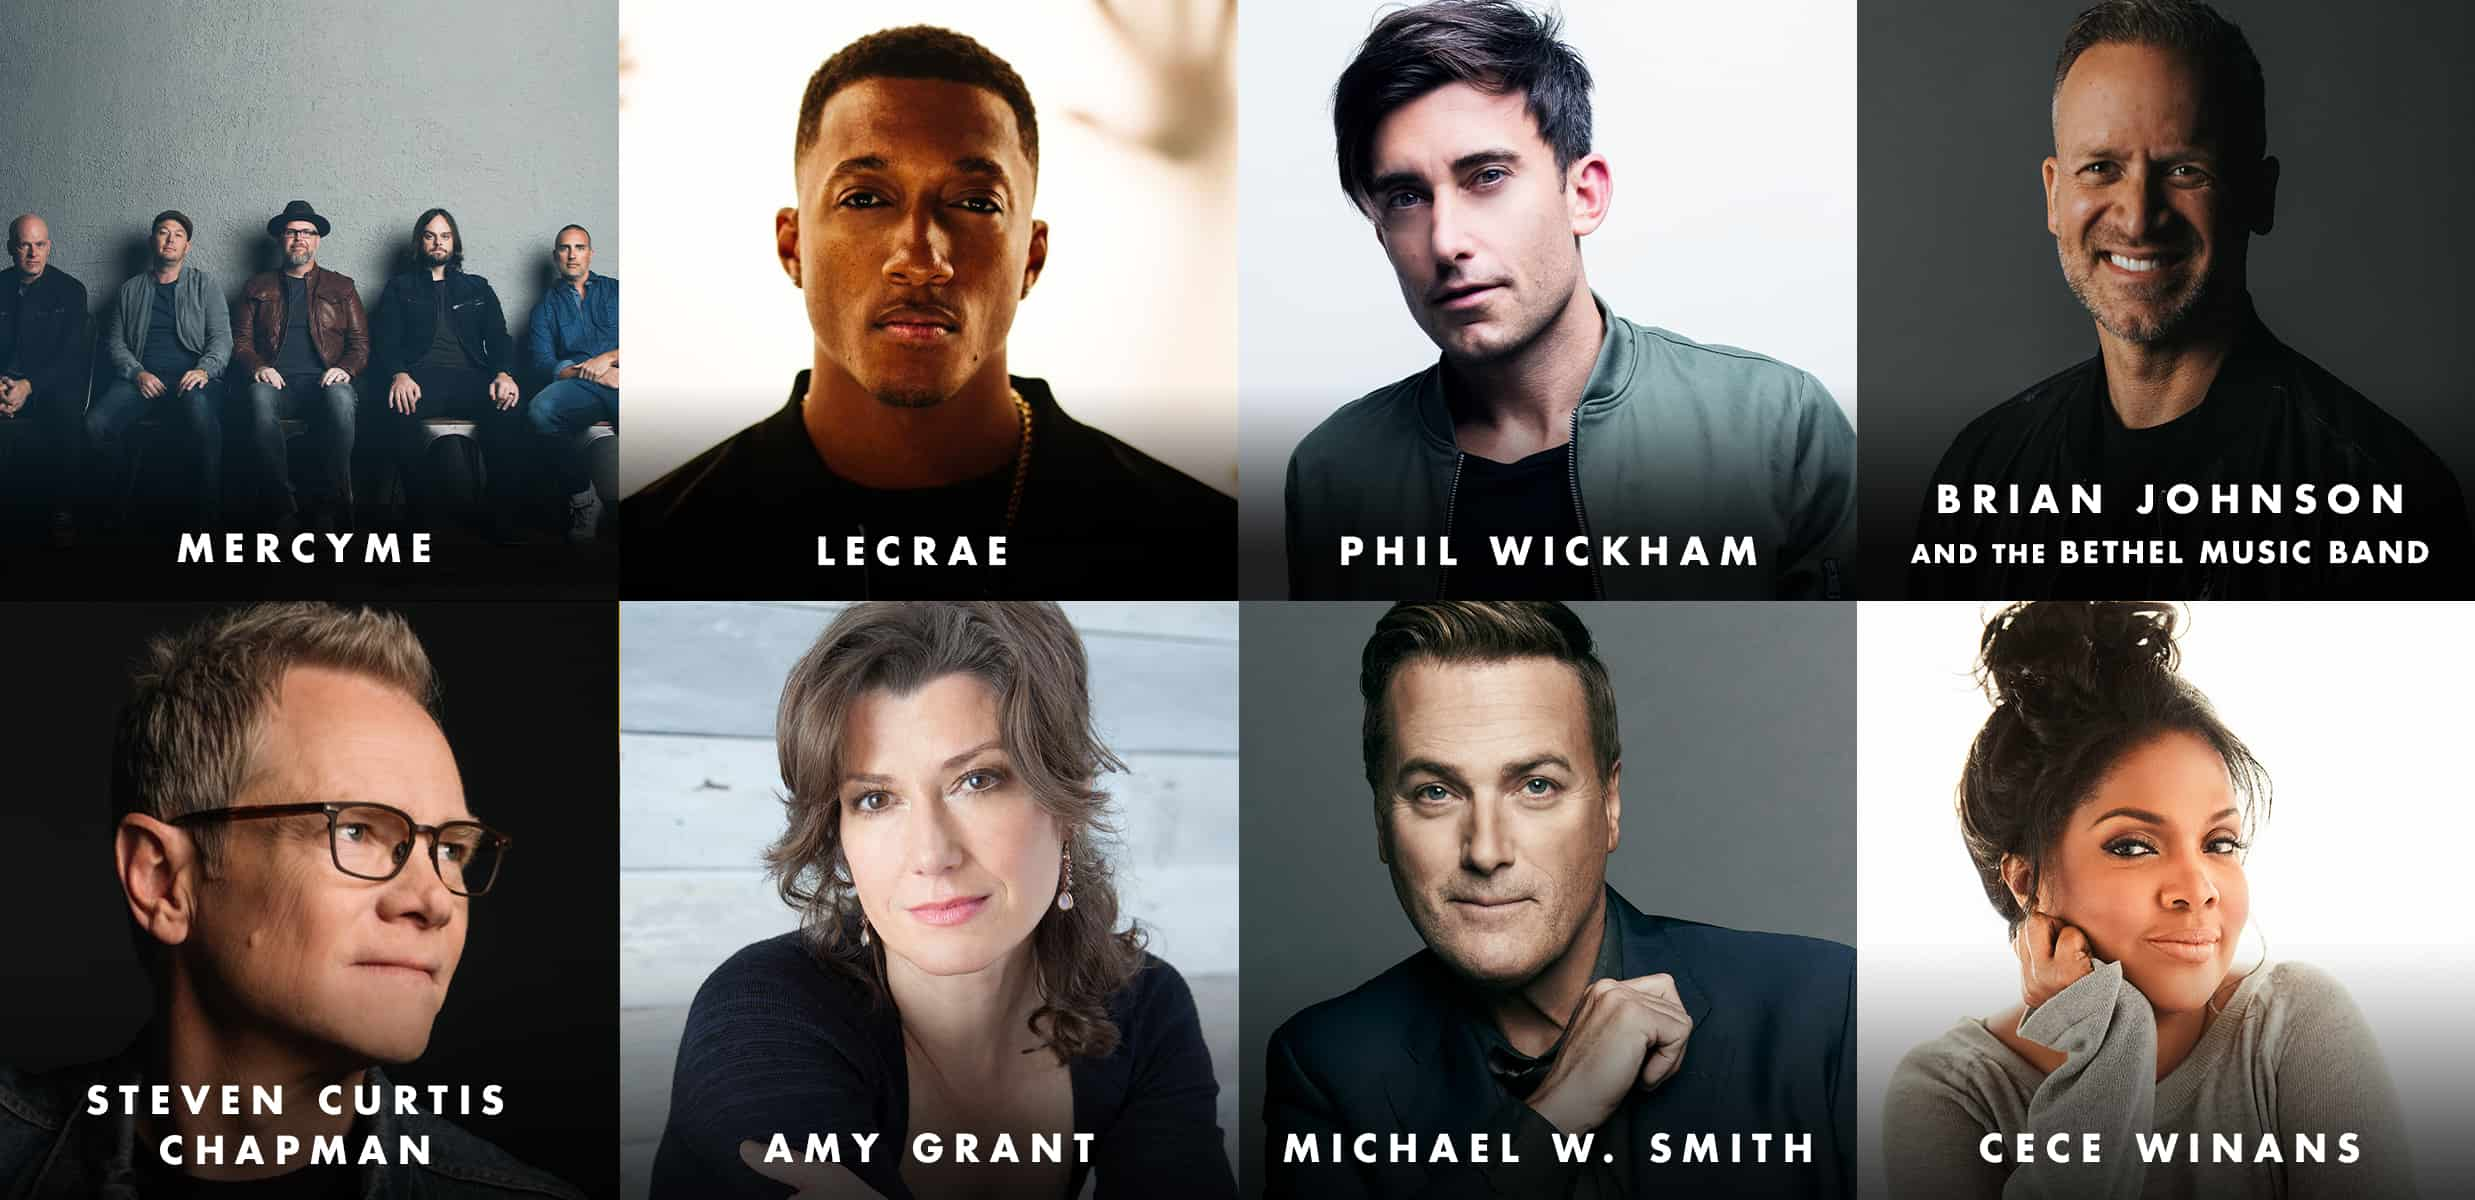 MercyMe, Lecrae, Phil Wickham, Brian Johnson And The Bethel Music Band Set To Perform At Historic 50th Annual Gma Dove Awards